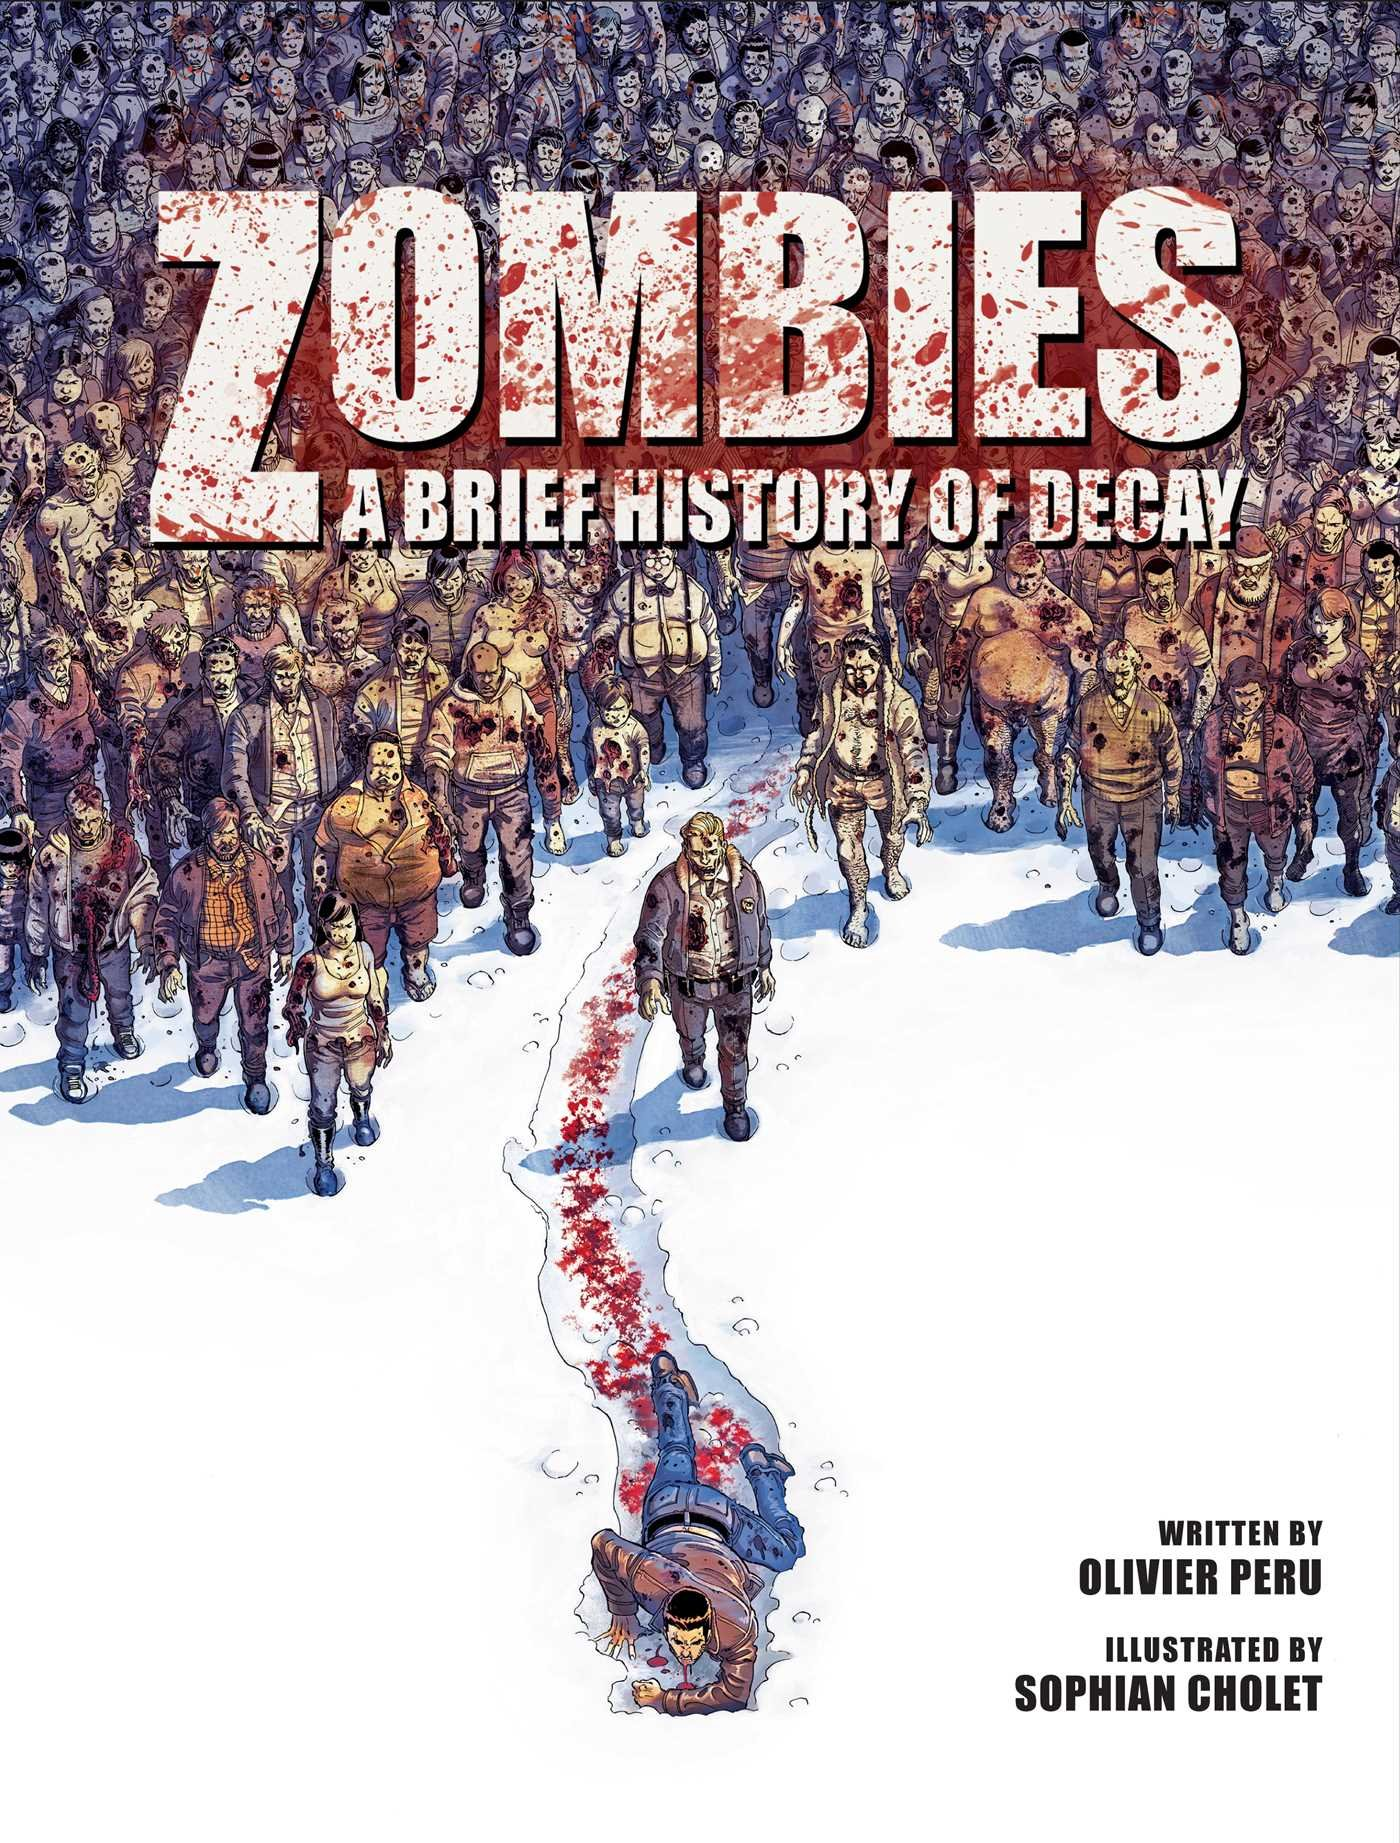 Amazon.com: Zombies: A Brief History Of Decay (9781608878628): Olivier  Peru, Sophian Cholet, Simon Champelovier: Books